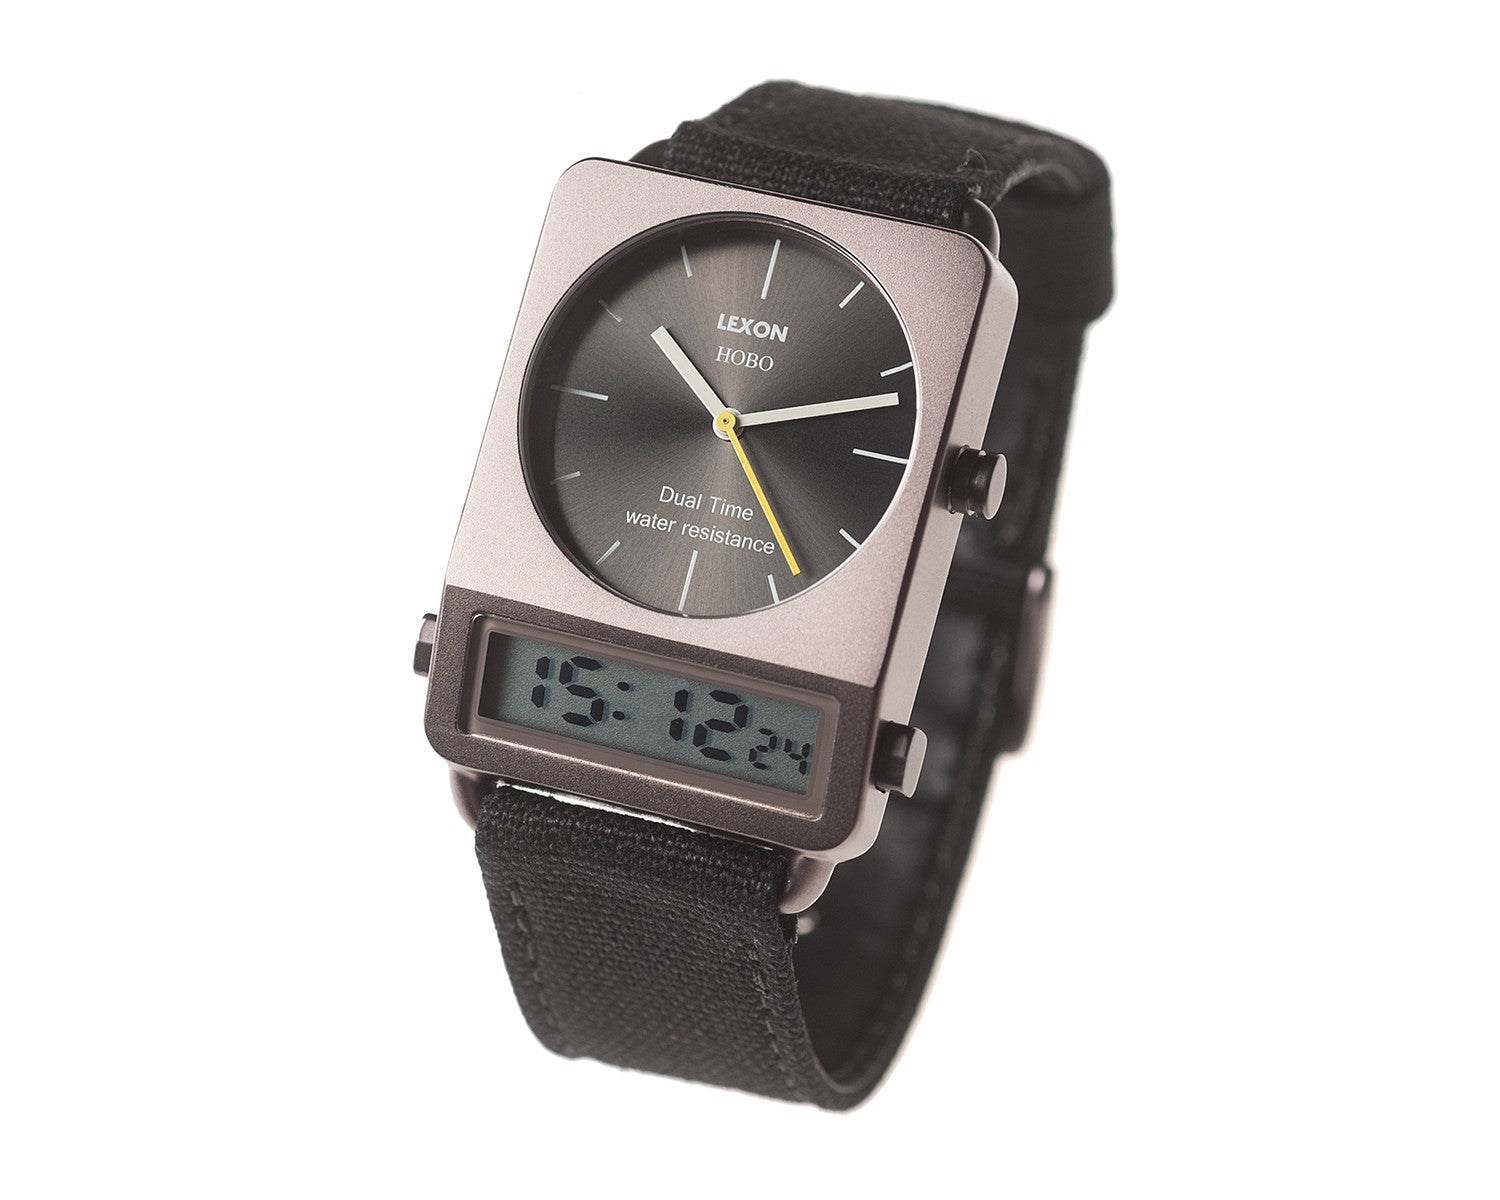 Picture of Lexon Hobo Watch - Siyah